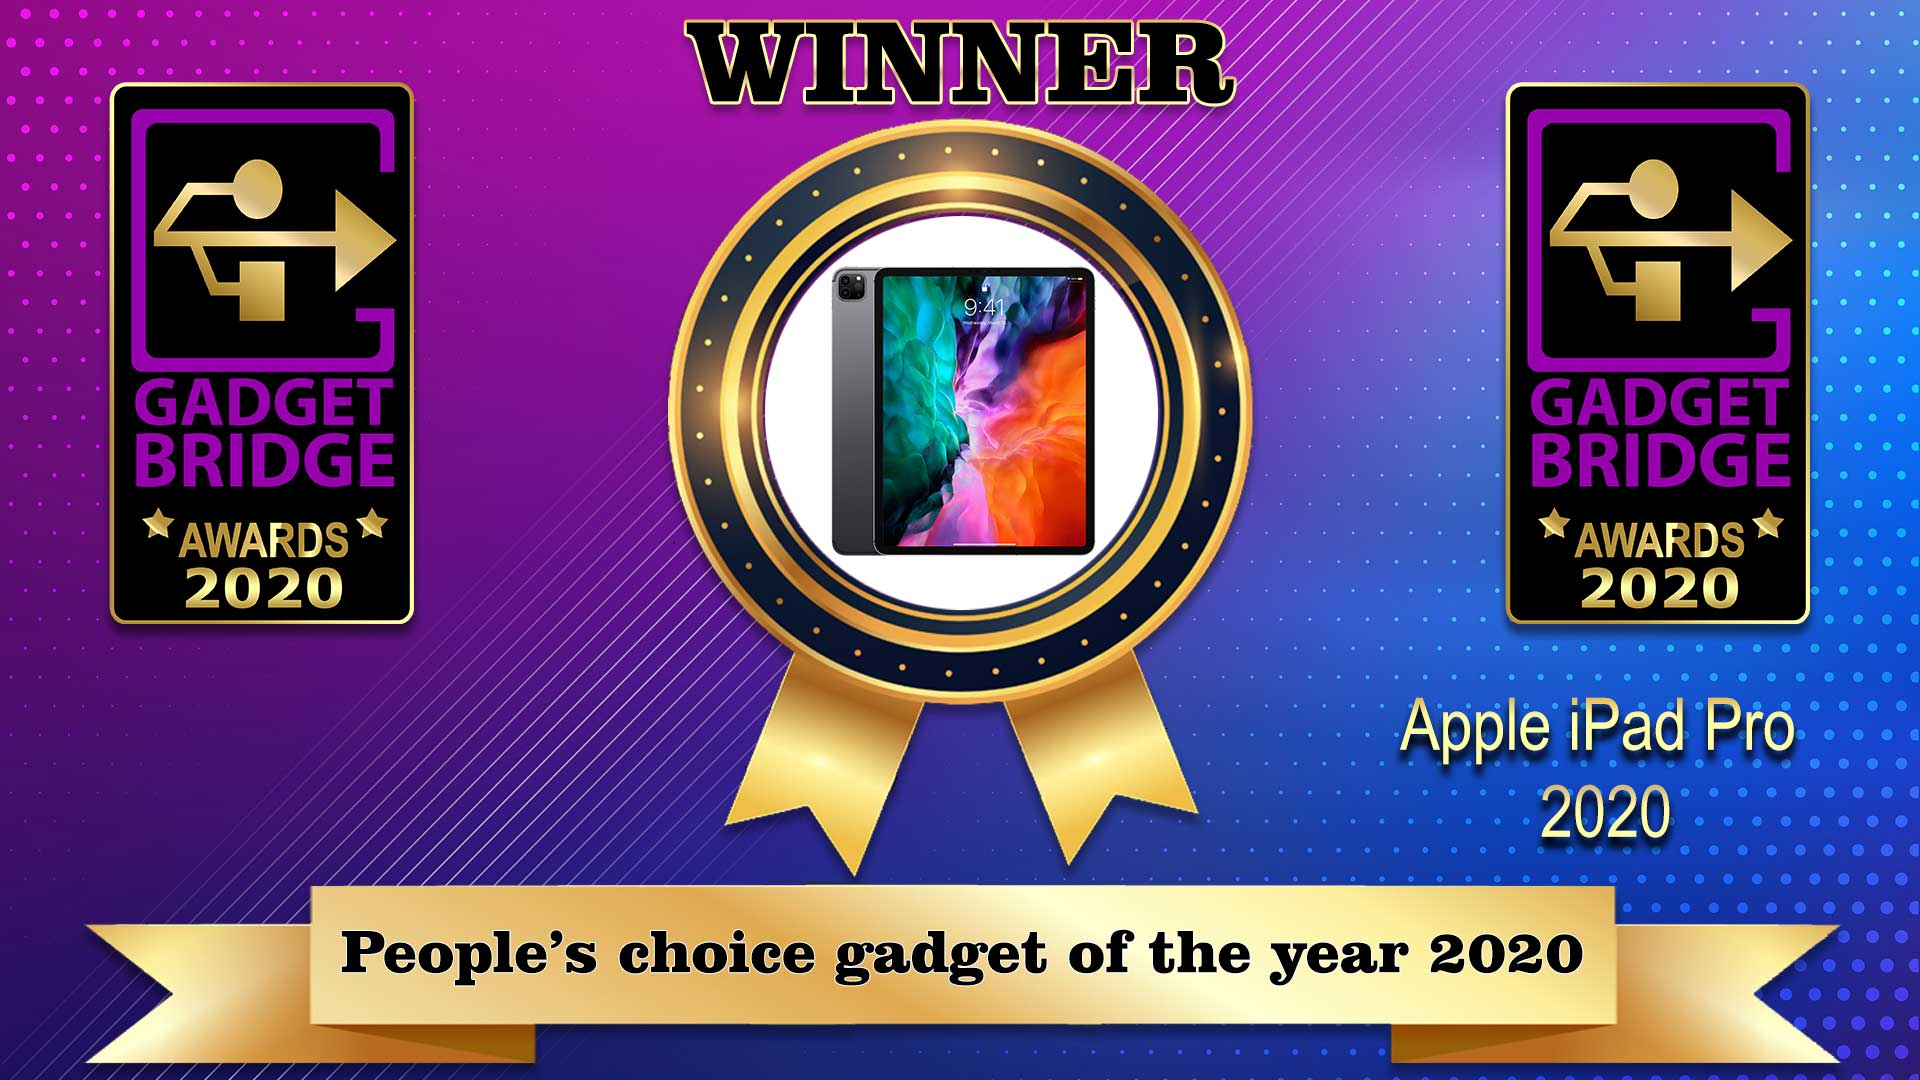 Gadget Bridge Awards People's-choice-gadget-of-the-year-2020